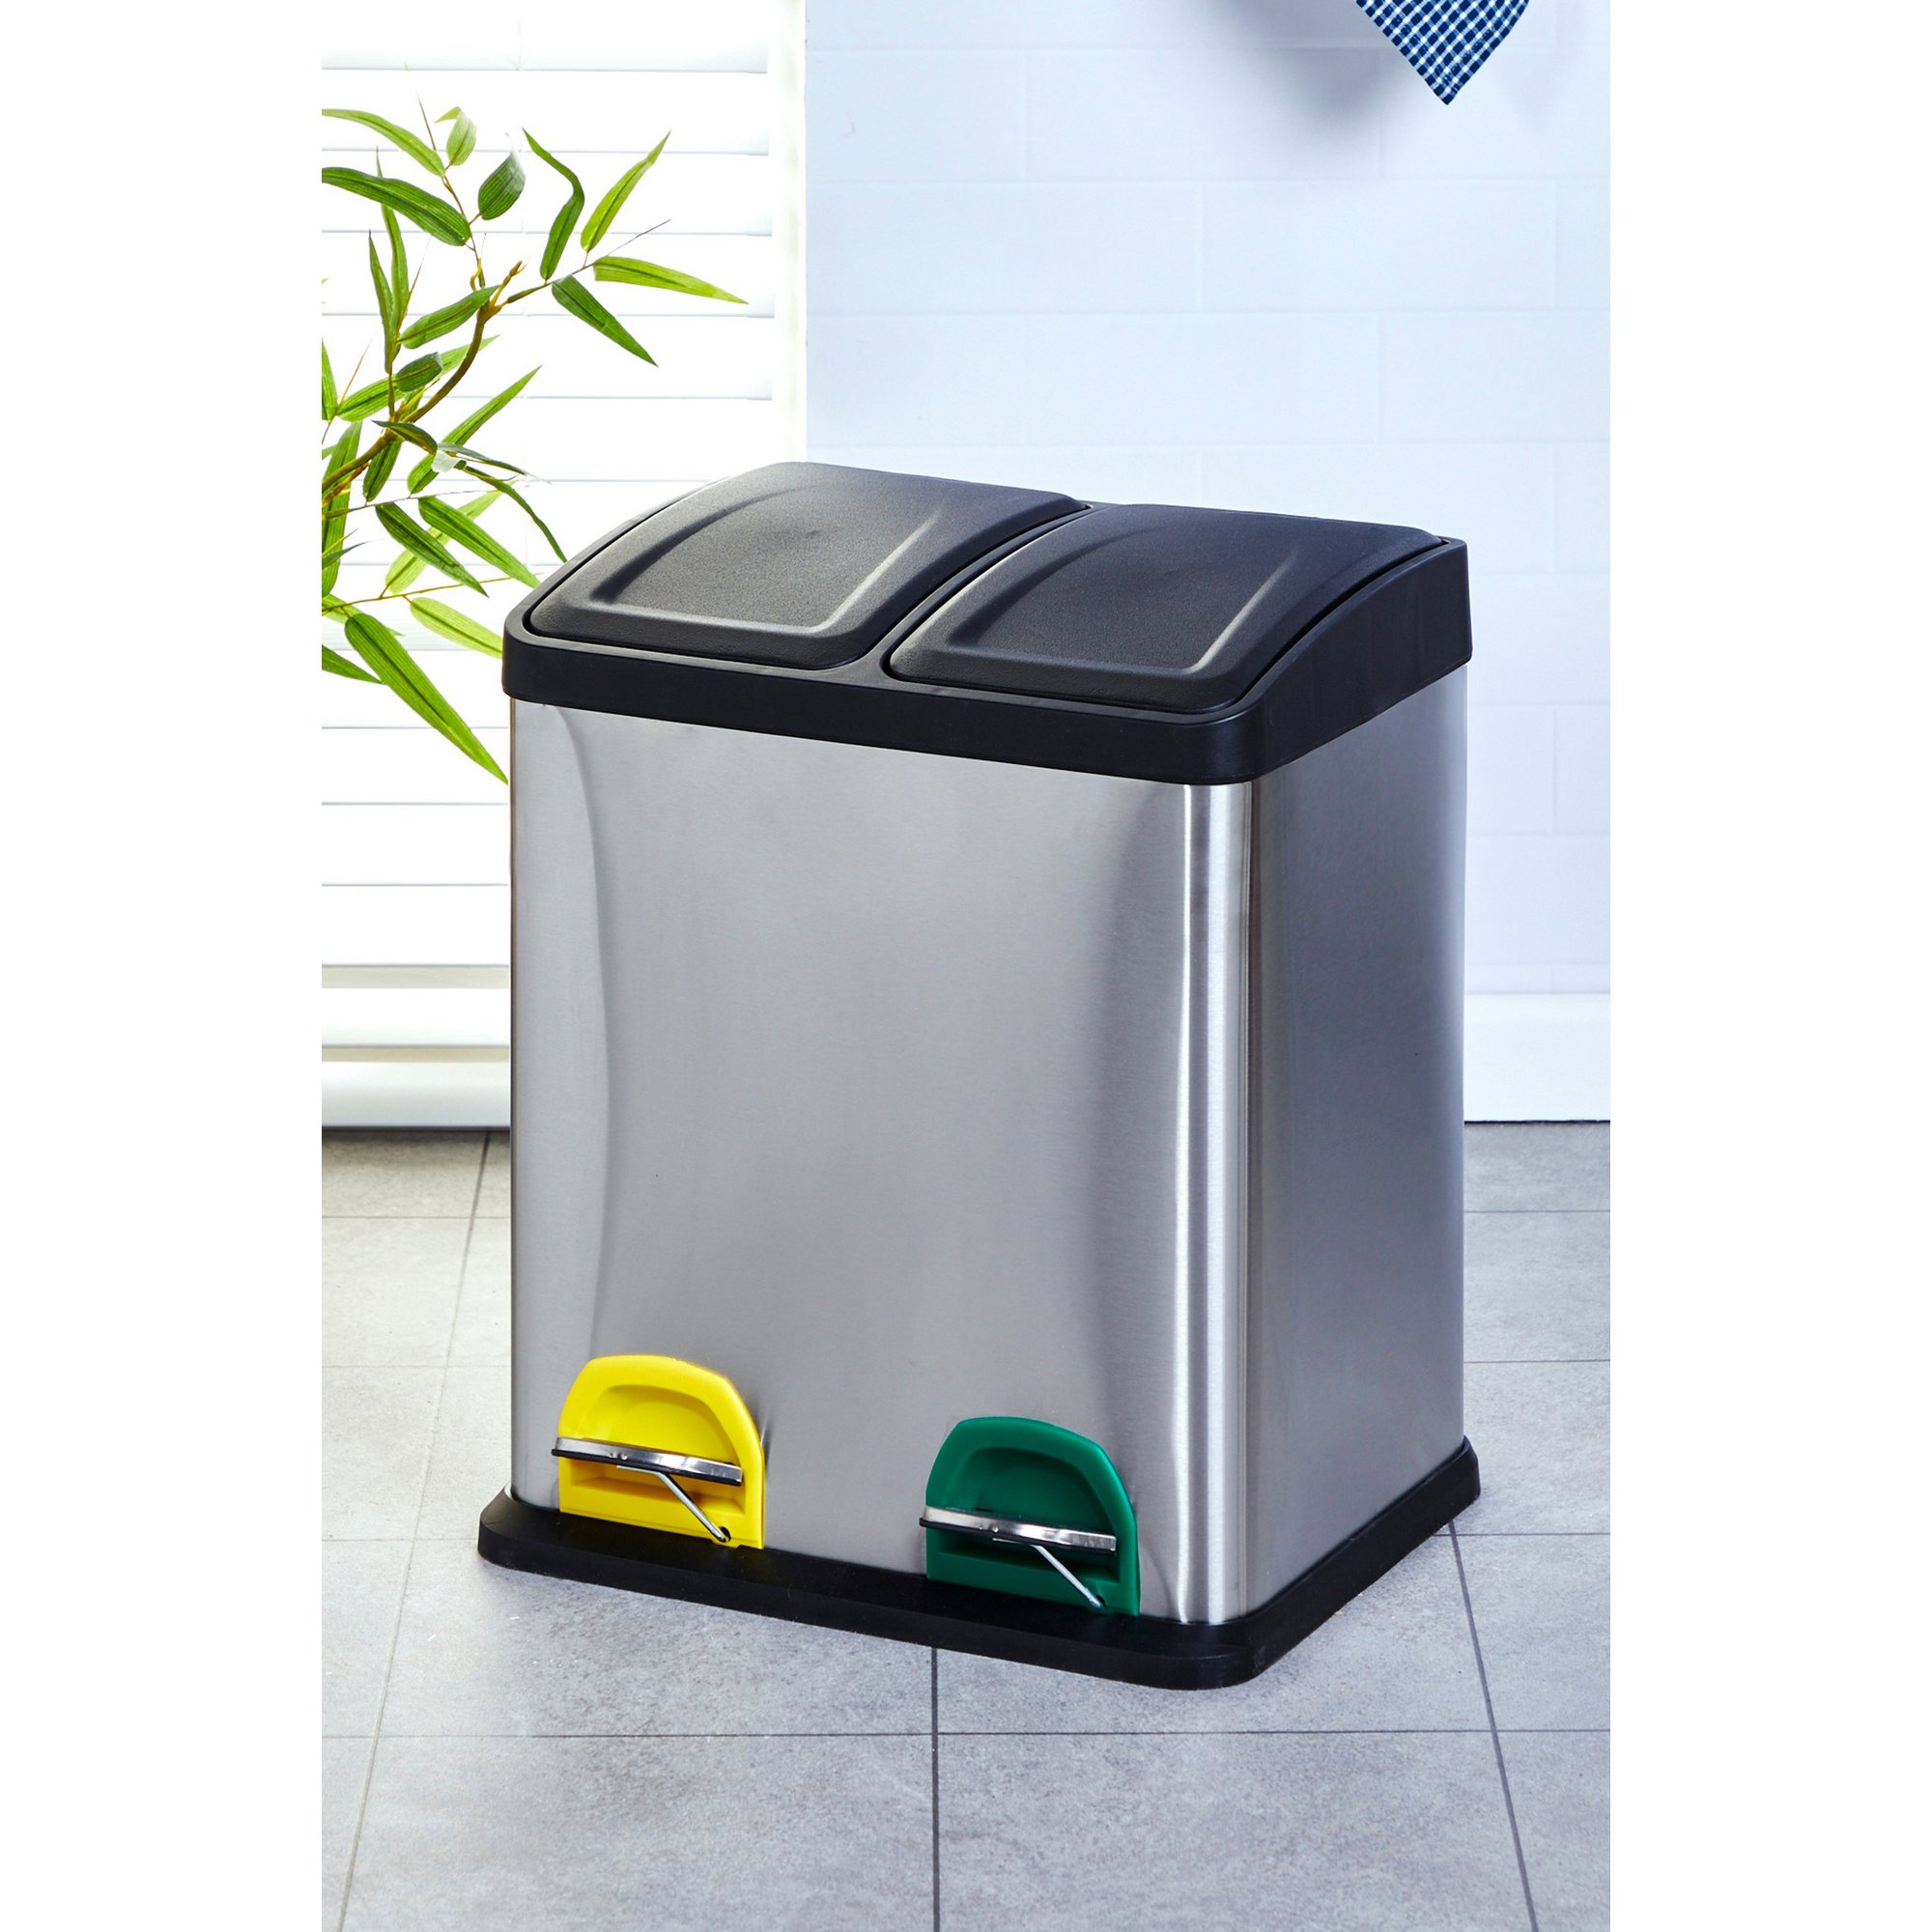 Image of 30 Litre Stainless Steel Recycle Bin